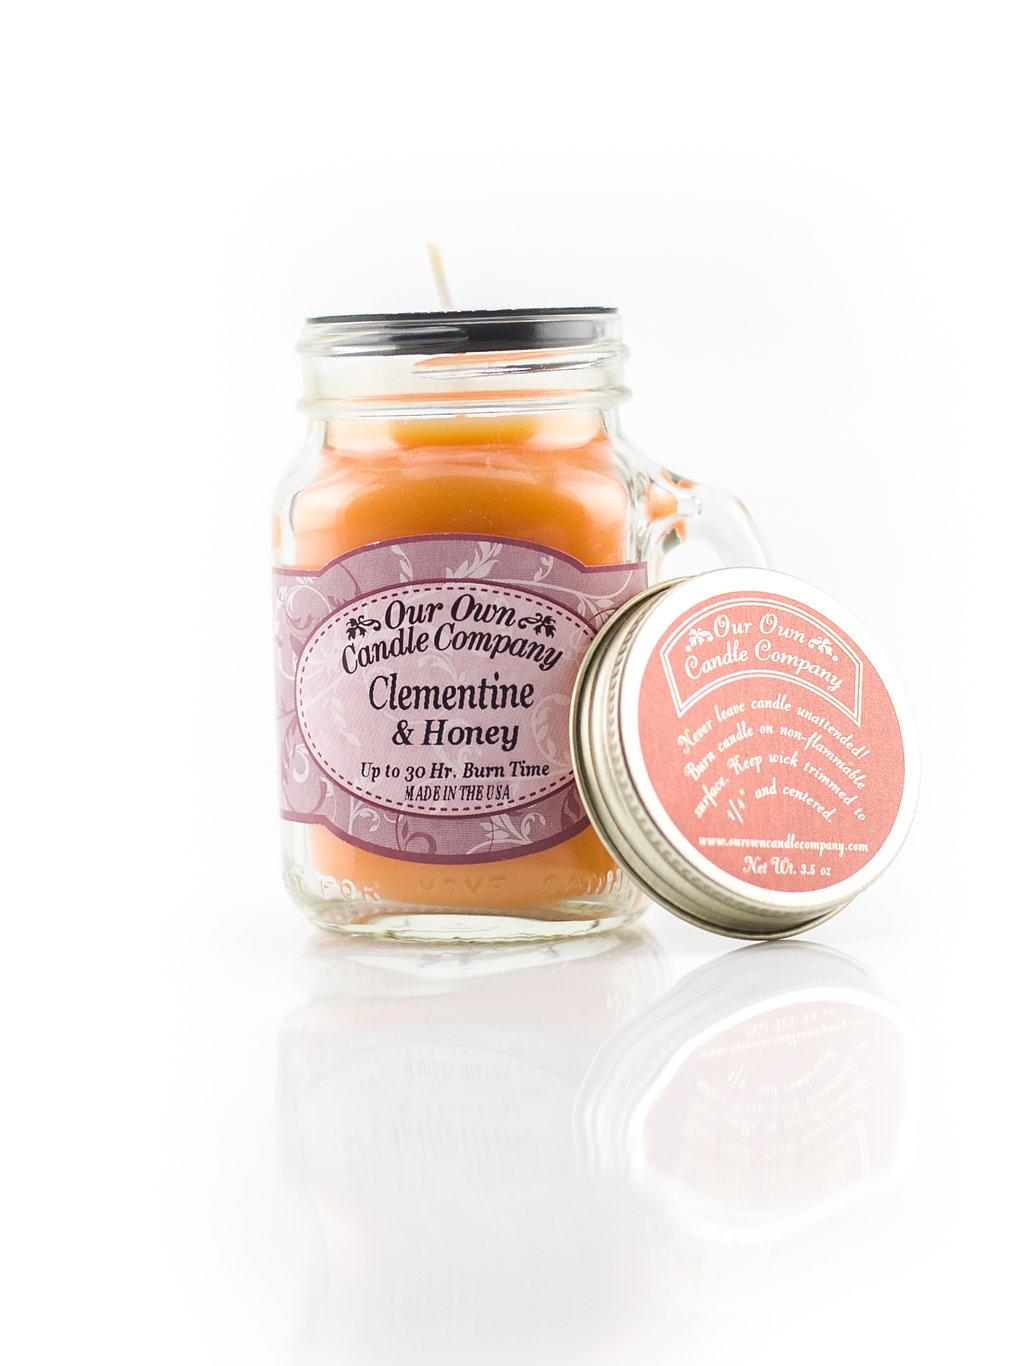 Mini Mason Jar Candle Clementine /& Honey Our Own Candle Company 30Hr Burn